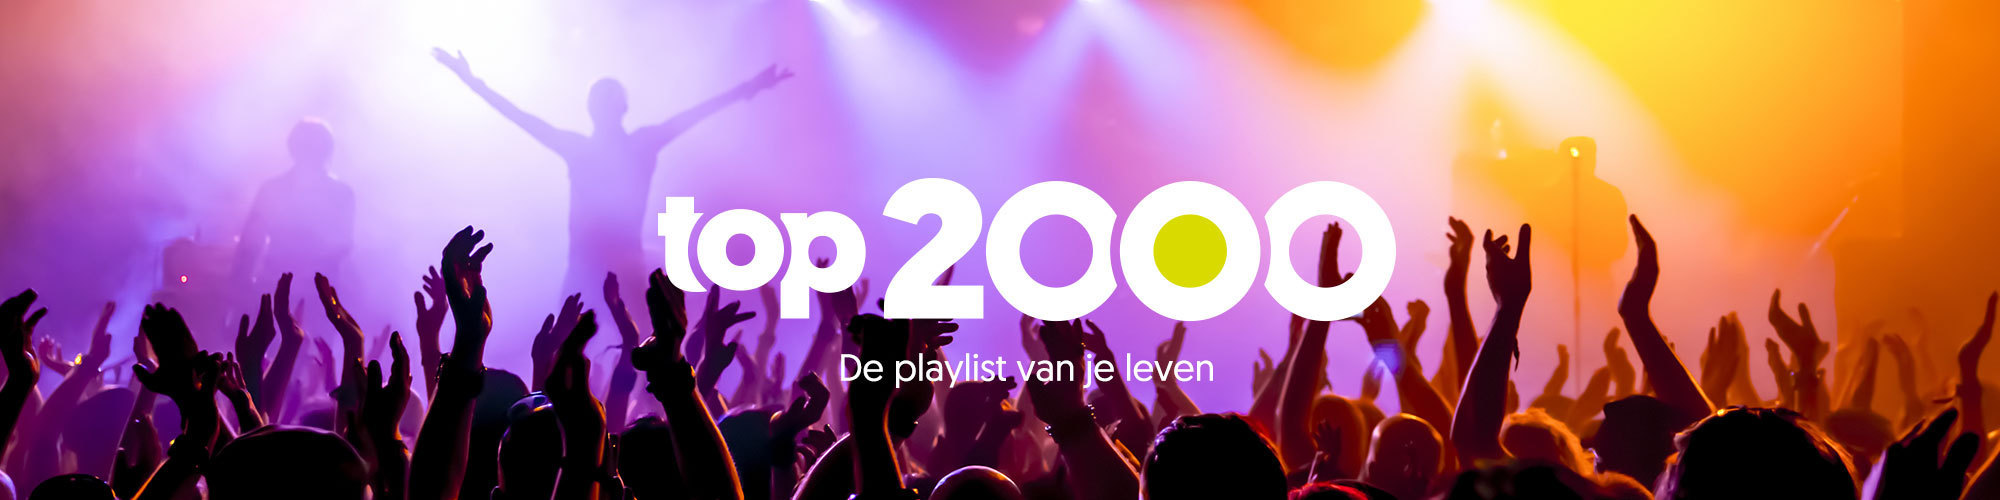 Joe carrousel top2000 finaal playlistvanjeleven 7